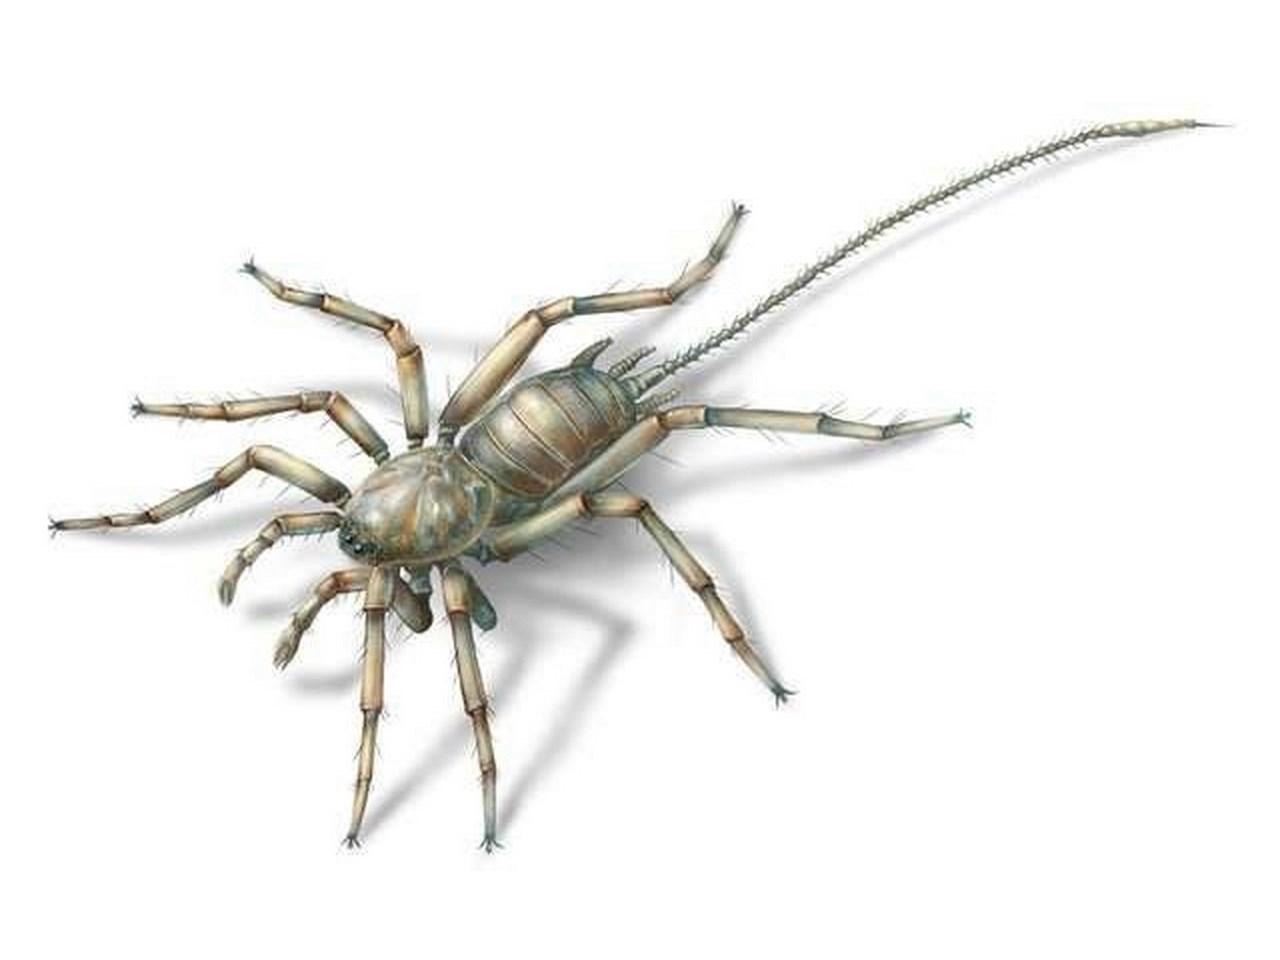 Four specimens of Chimerarachne have been recovered